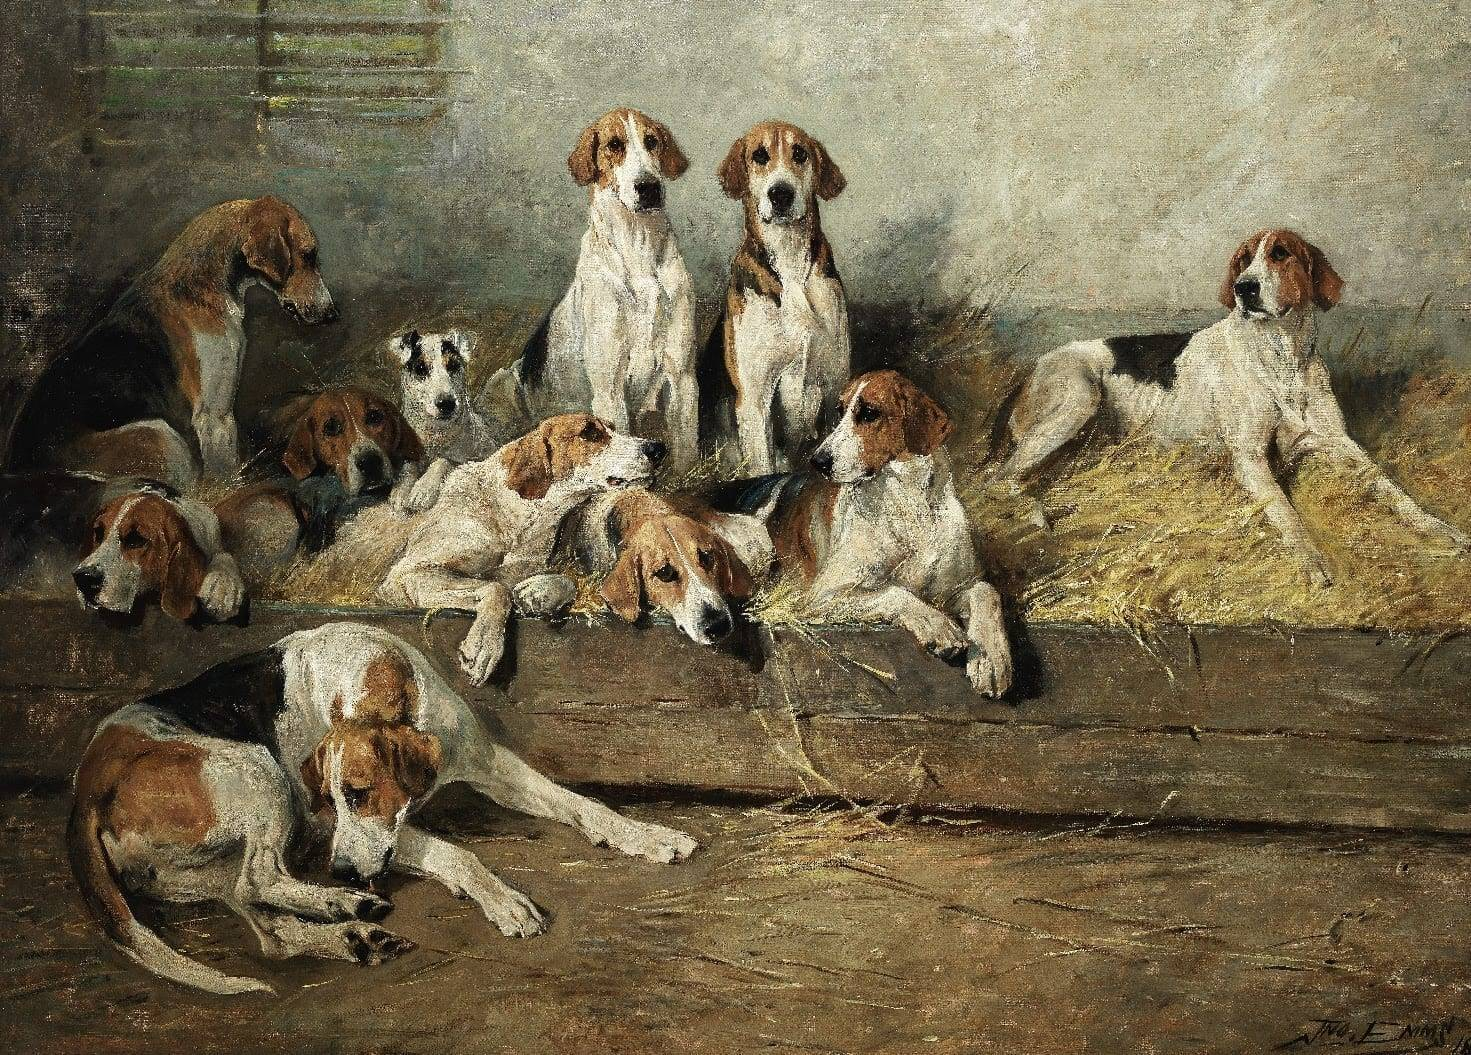 The Bitch Pack of the Meath Foxhounds by John Emms. Estimate: £180,000-250,000